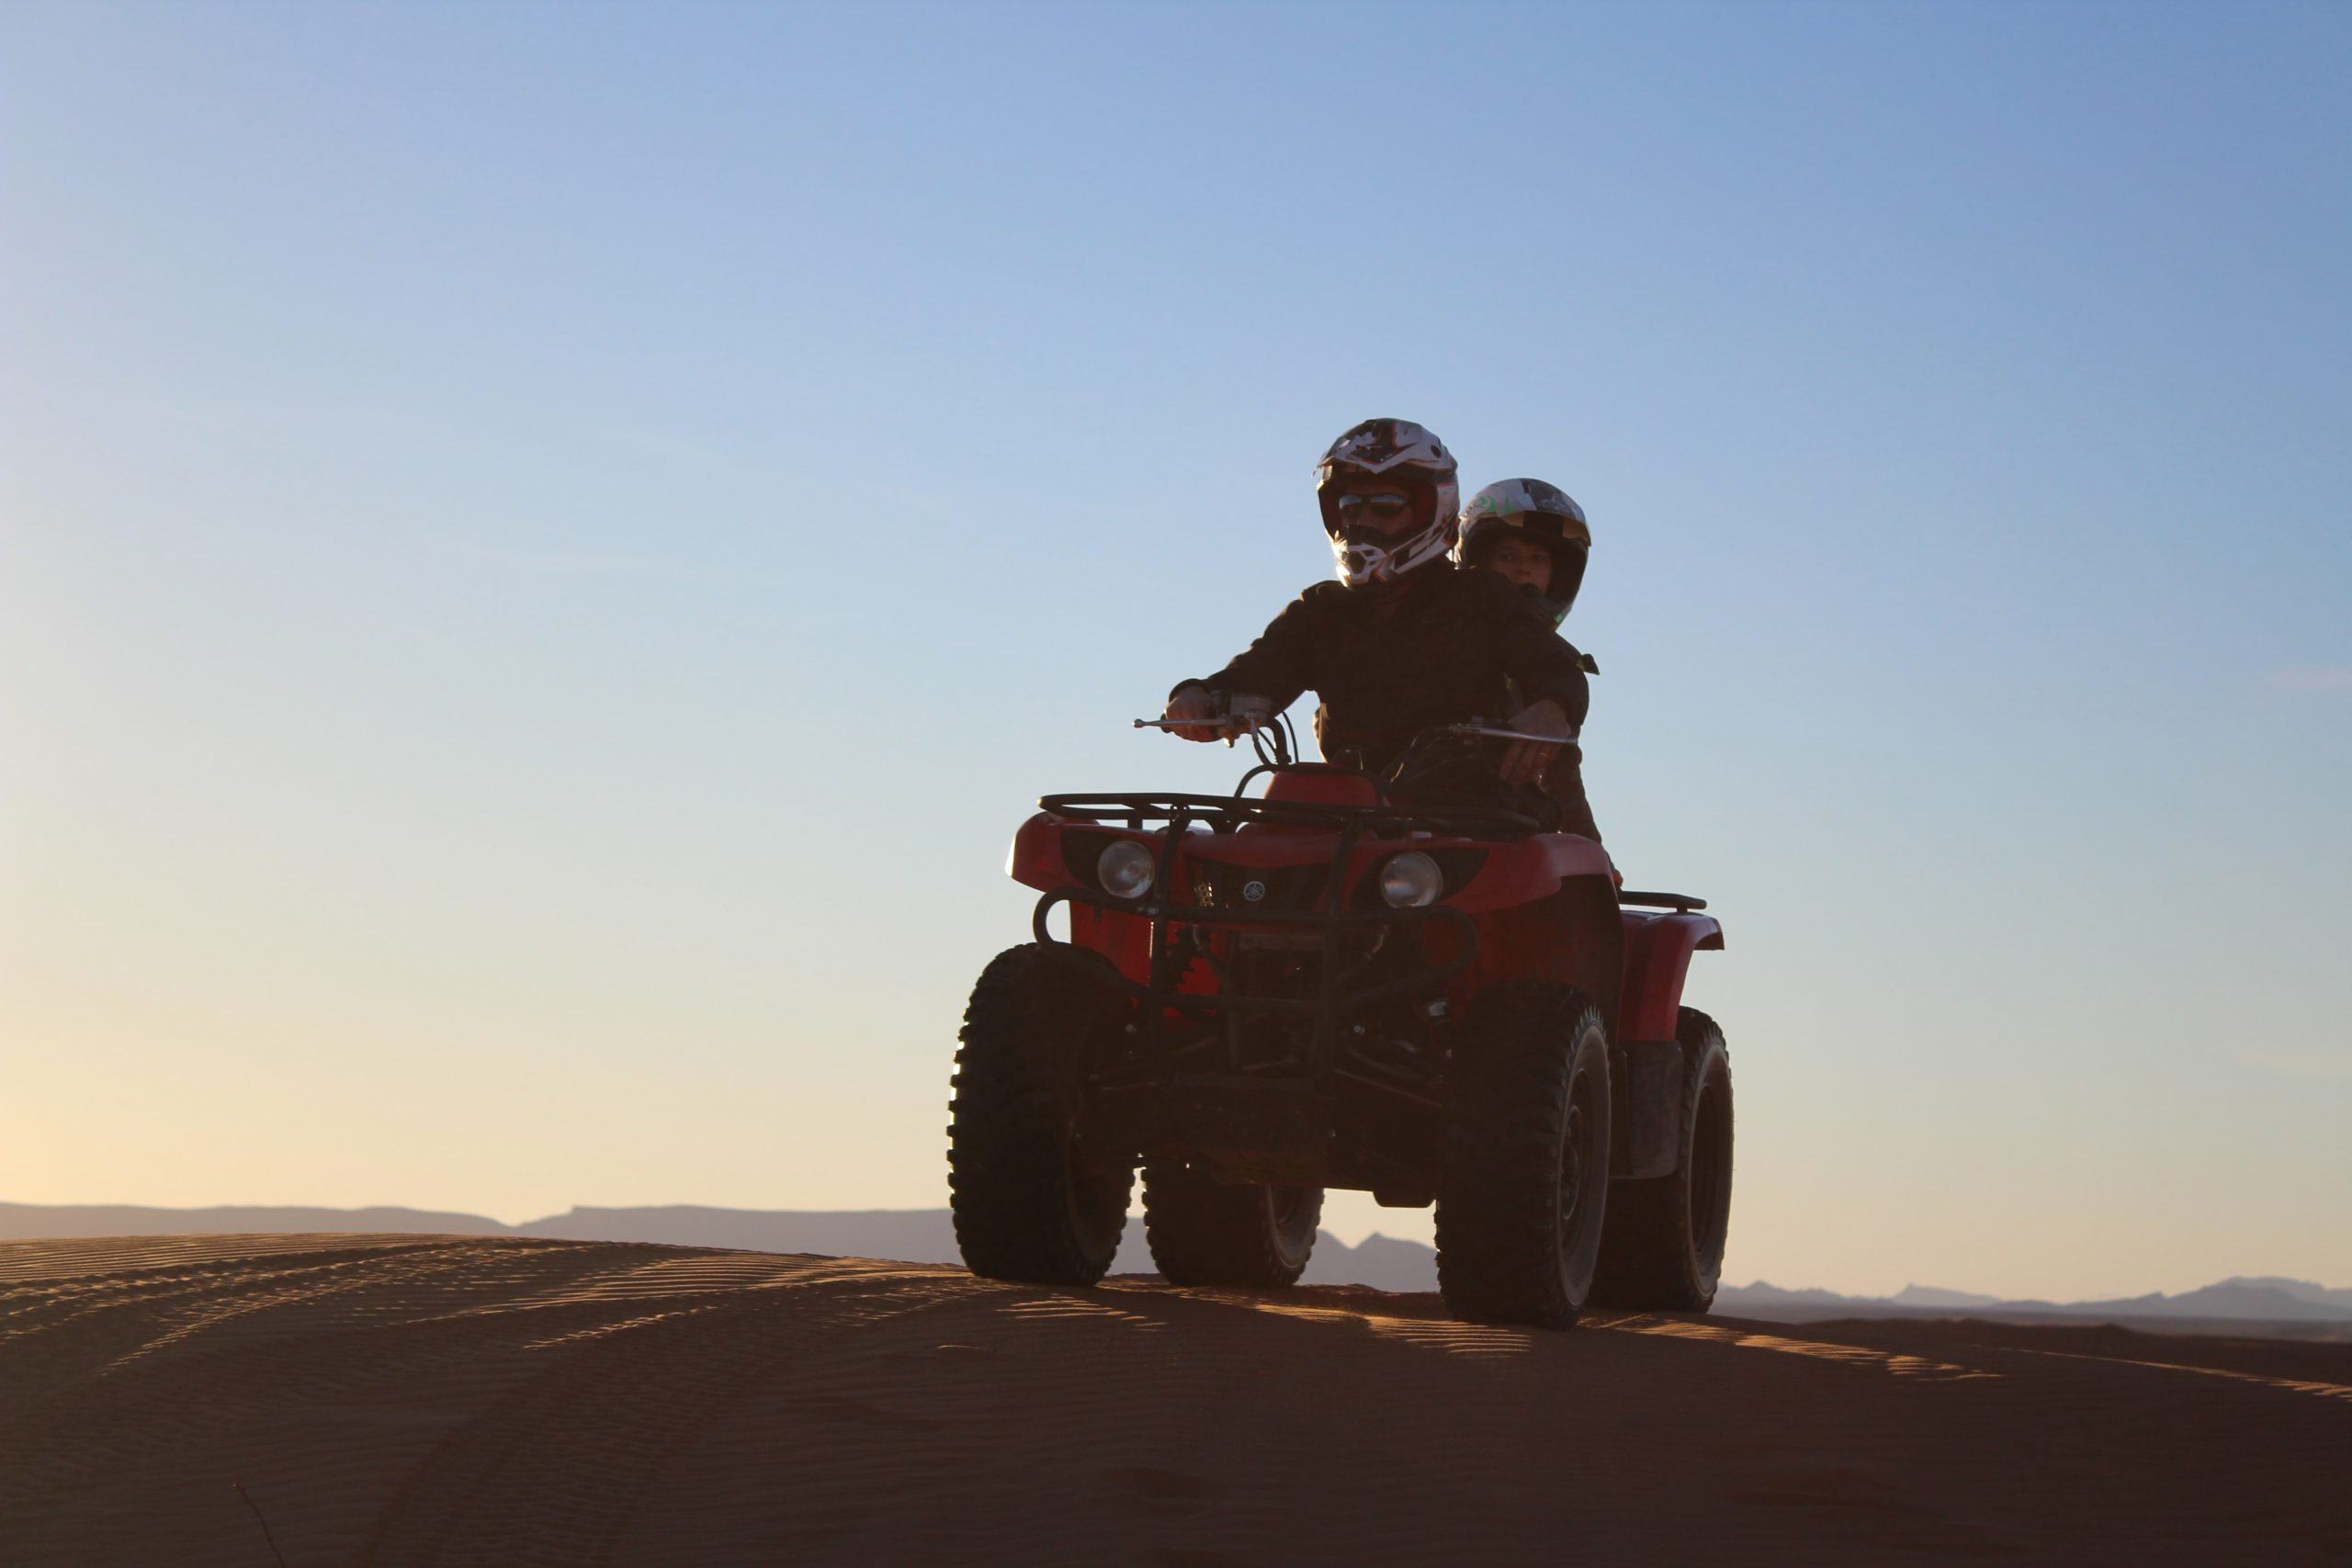 Tips to Have the Best Experience While Abu Dhabi Desert Safari